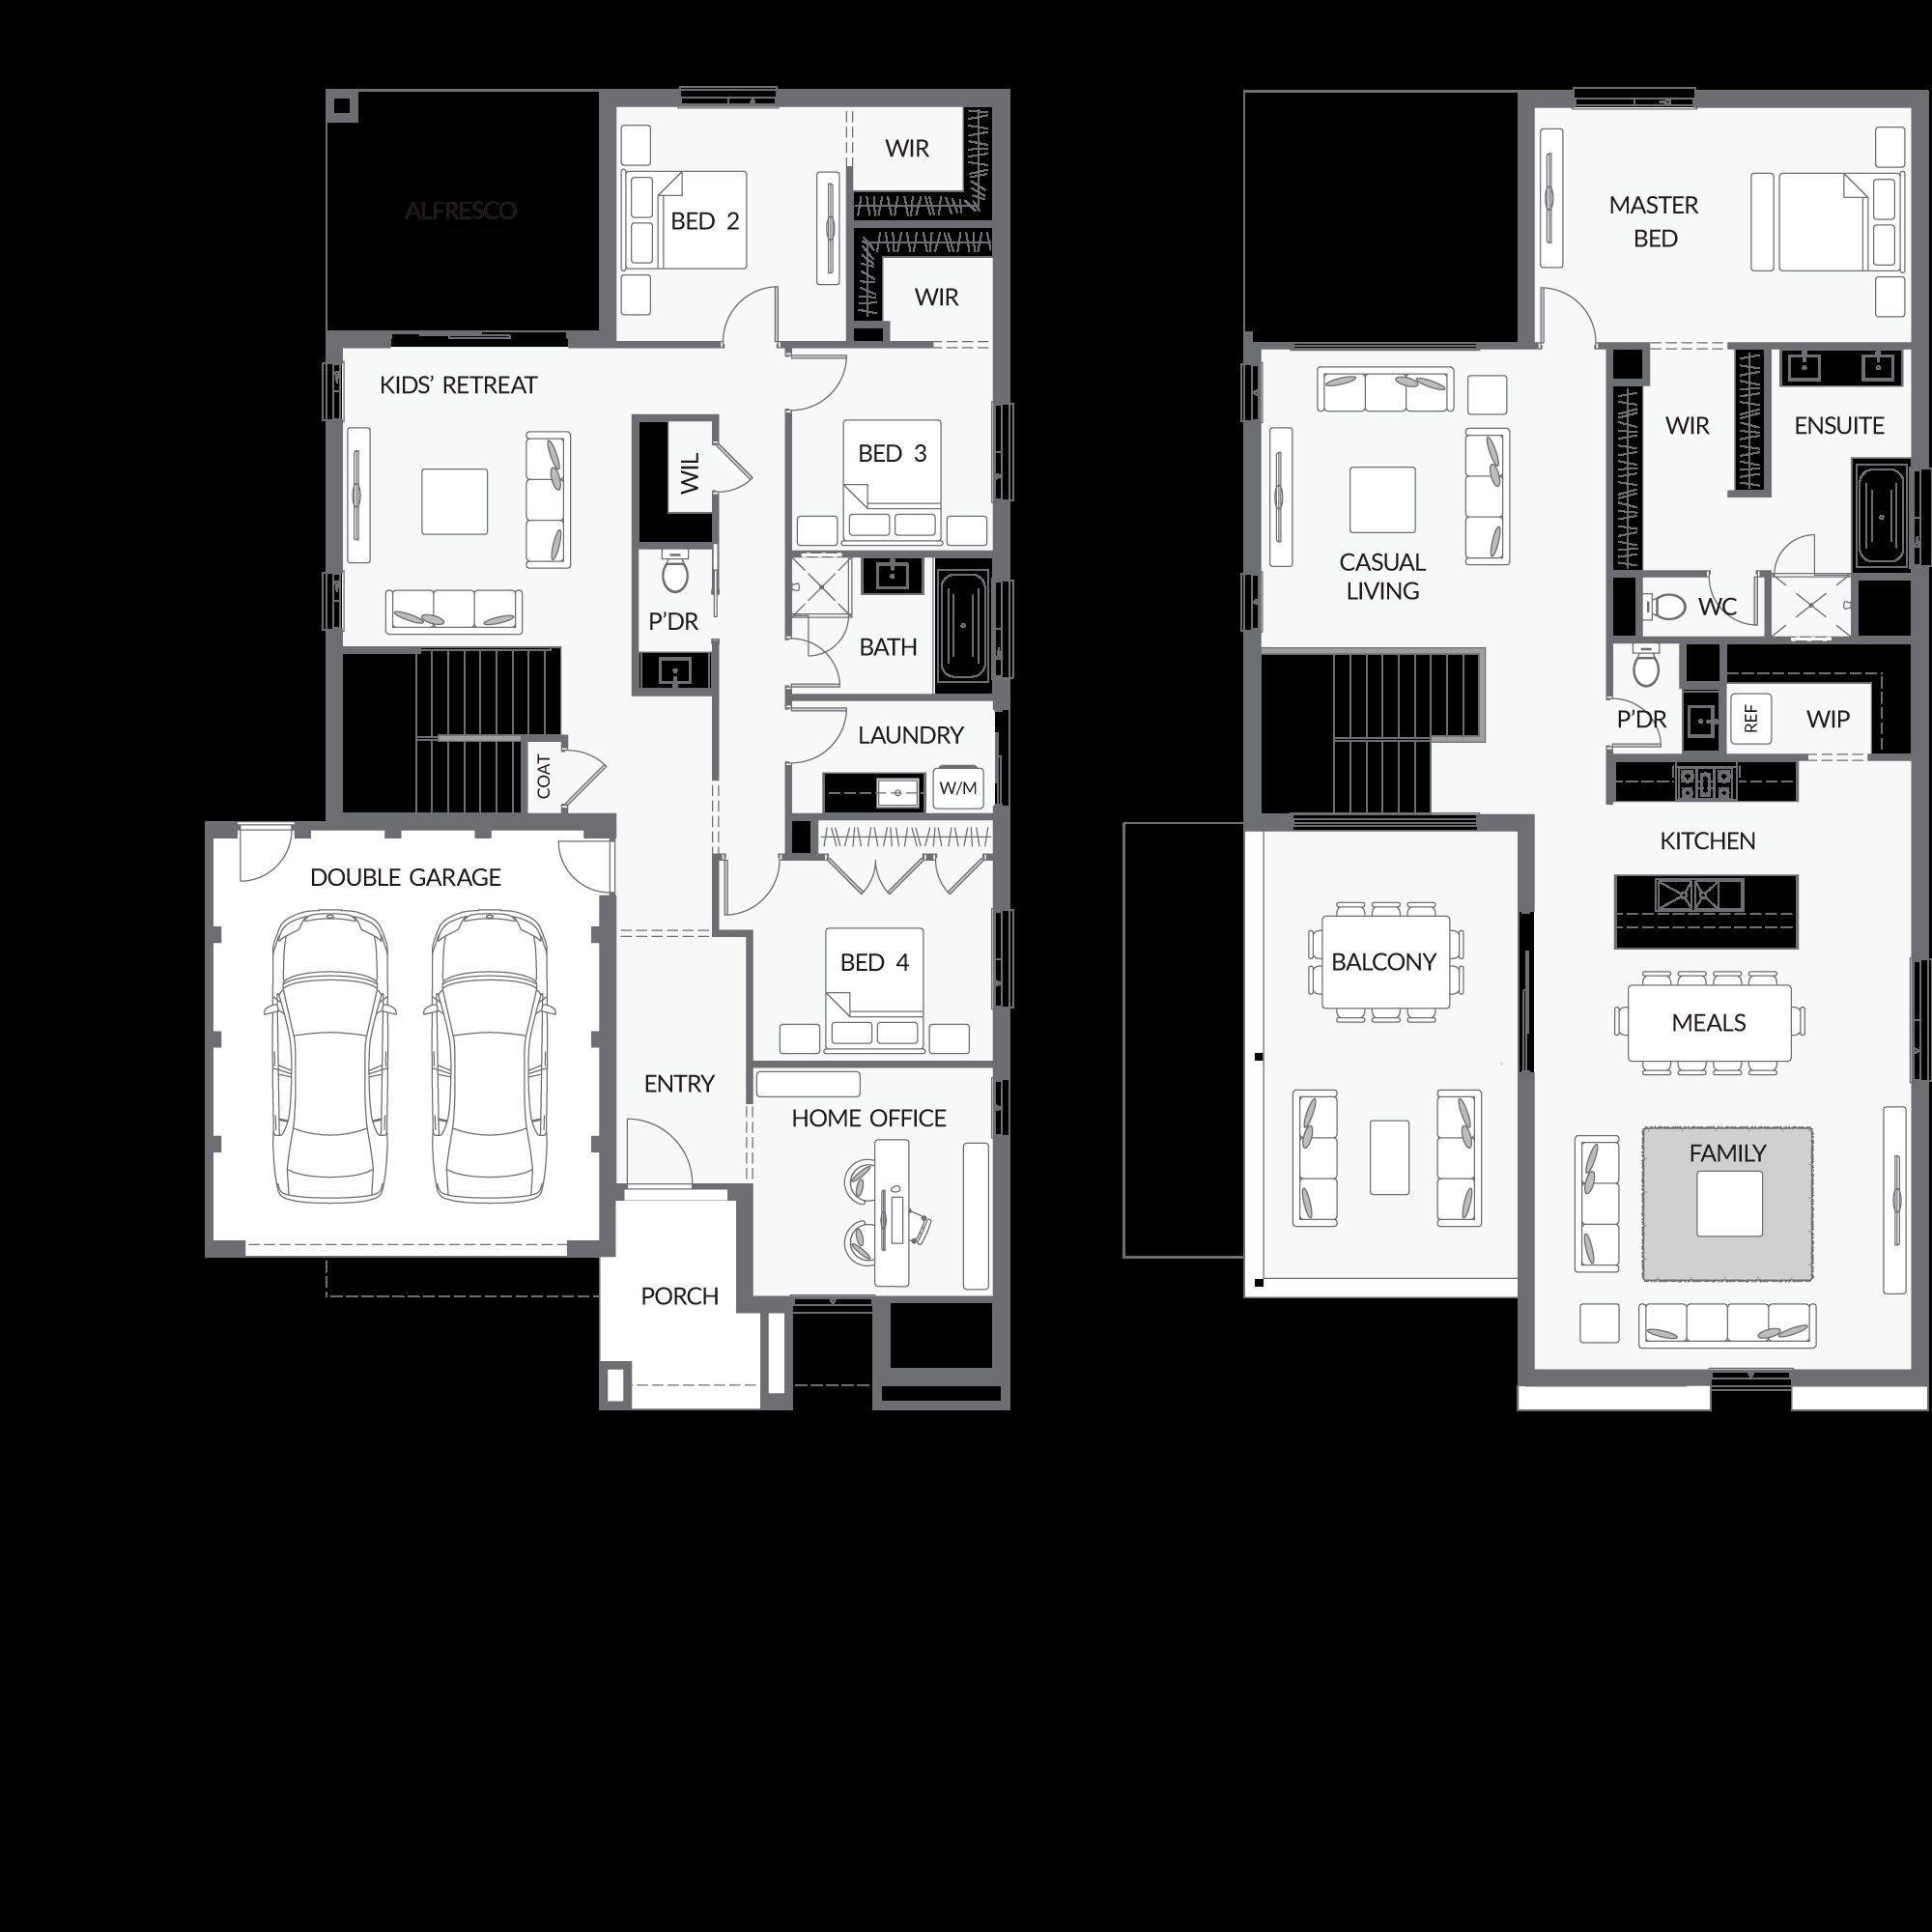 2 Story House Plans Kitchen Upstairs in 2020 House plans